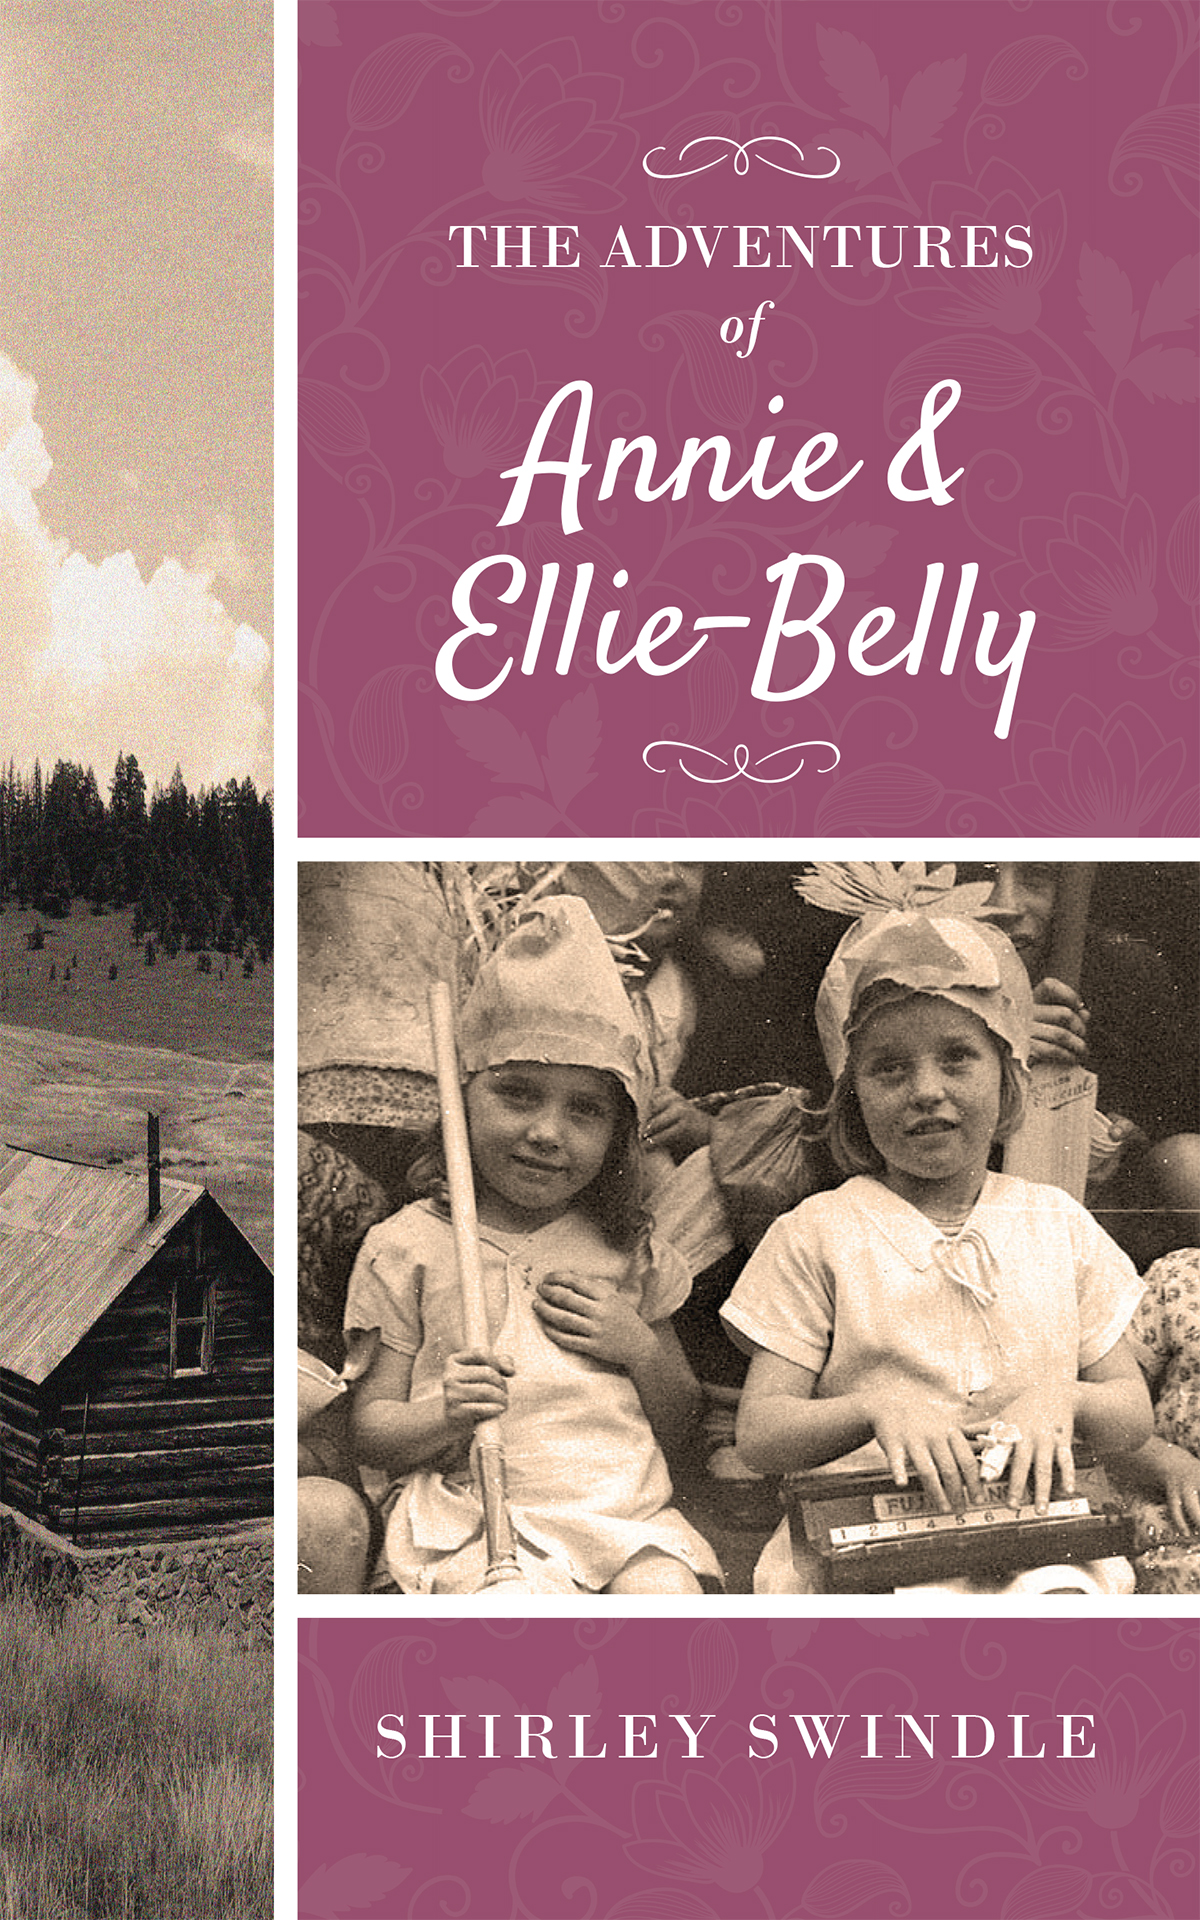 The Adventures of Annie & Ellie-Belly